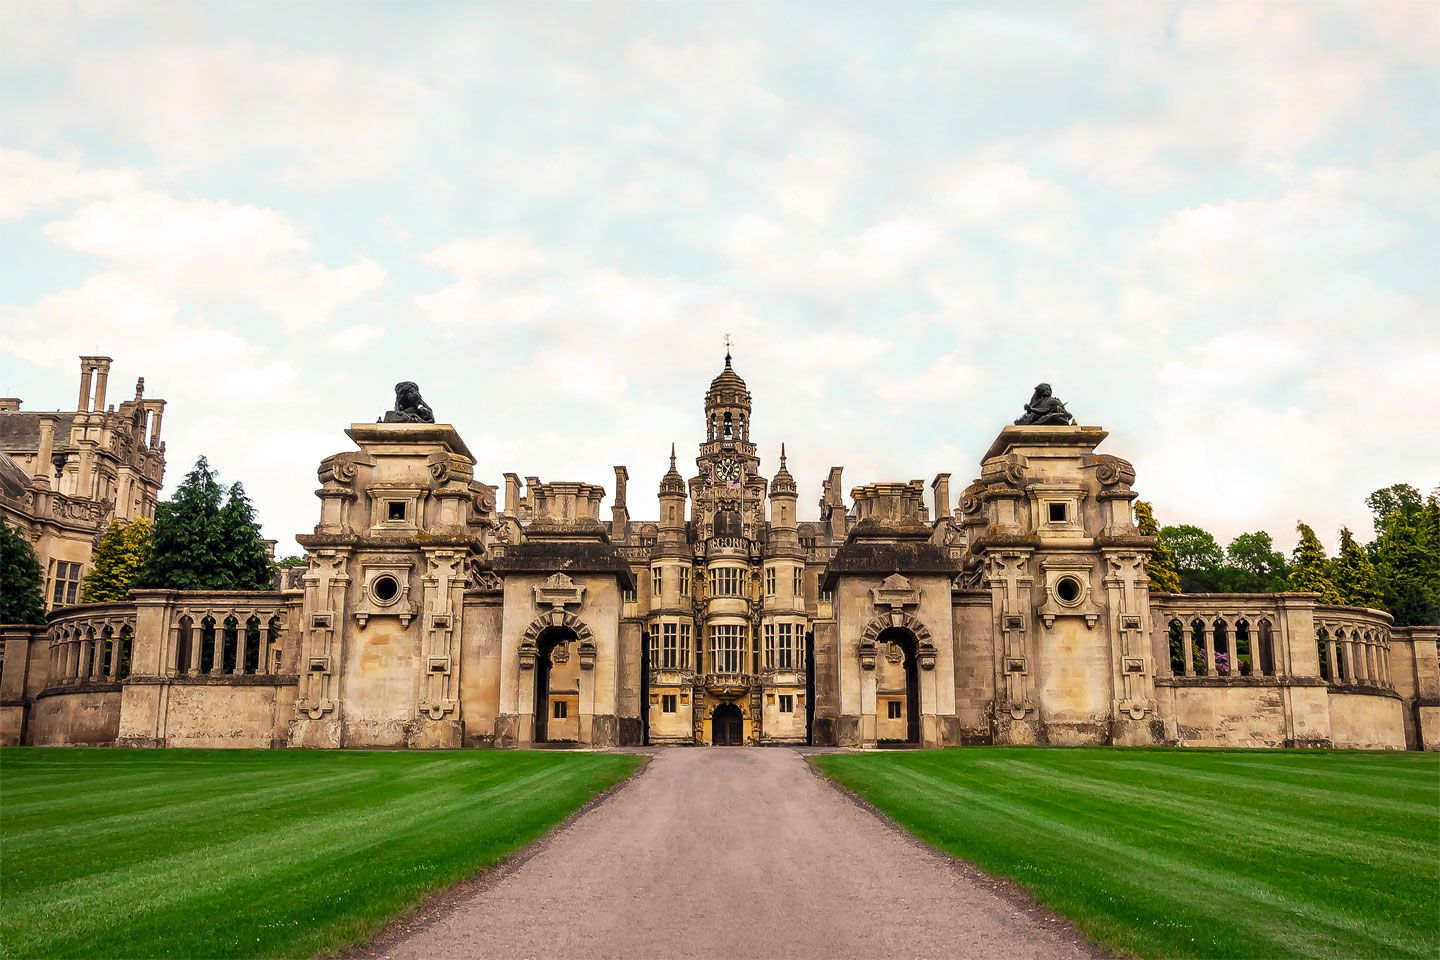 Harlaxton Manor Built In 1837 Is A Manor House Located In